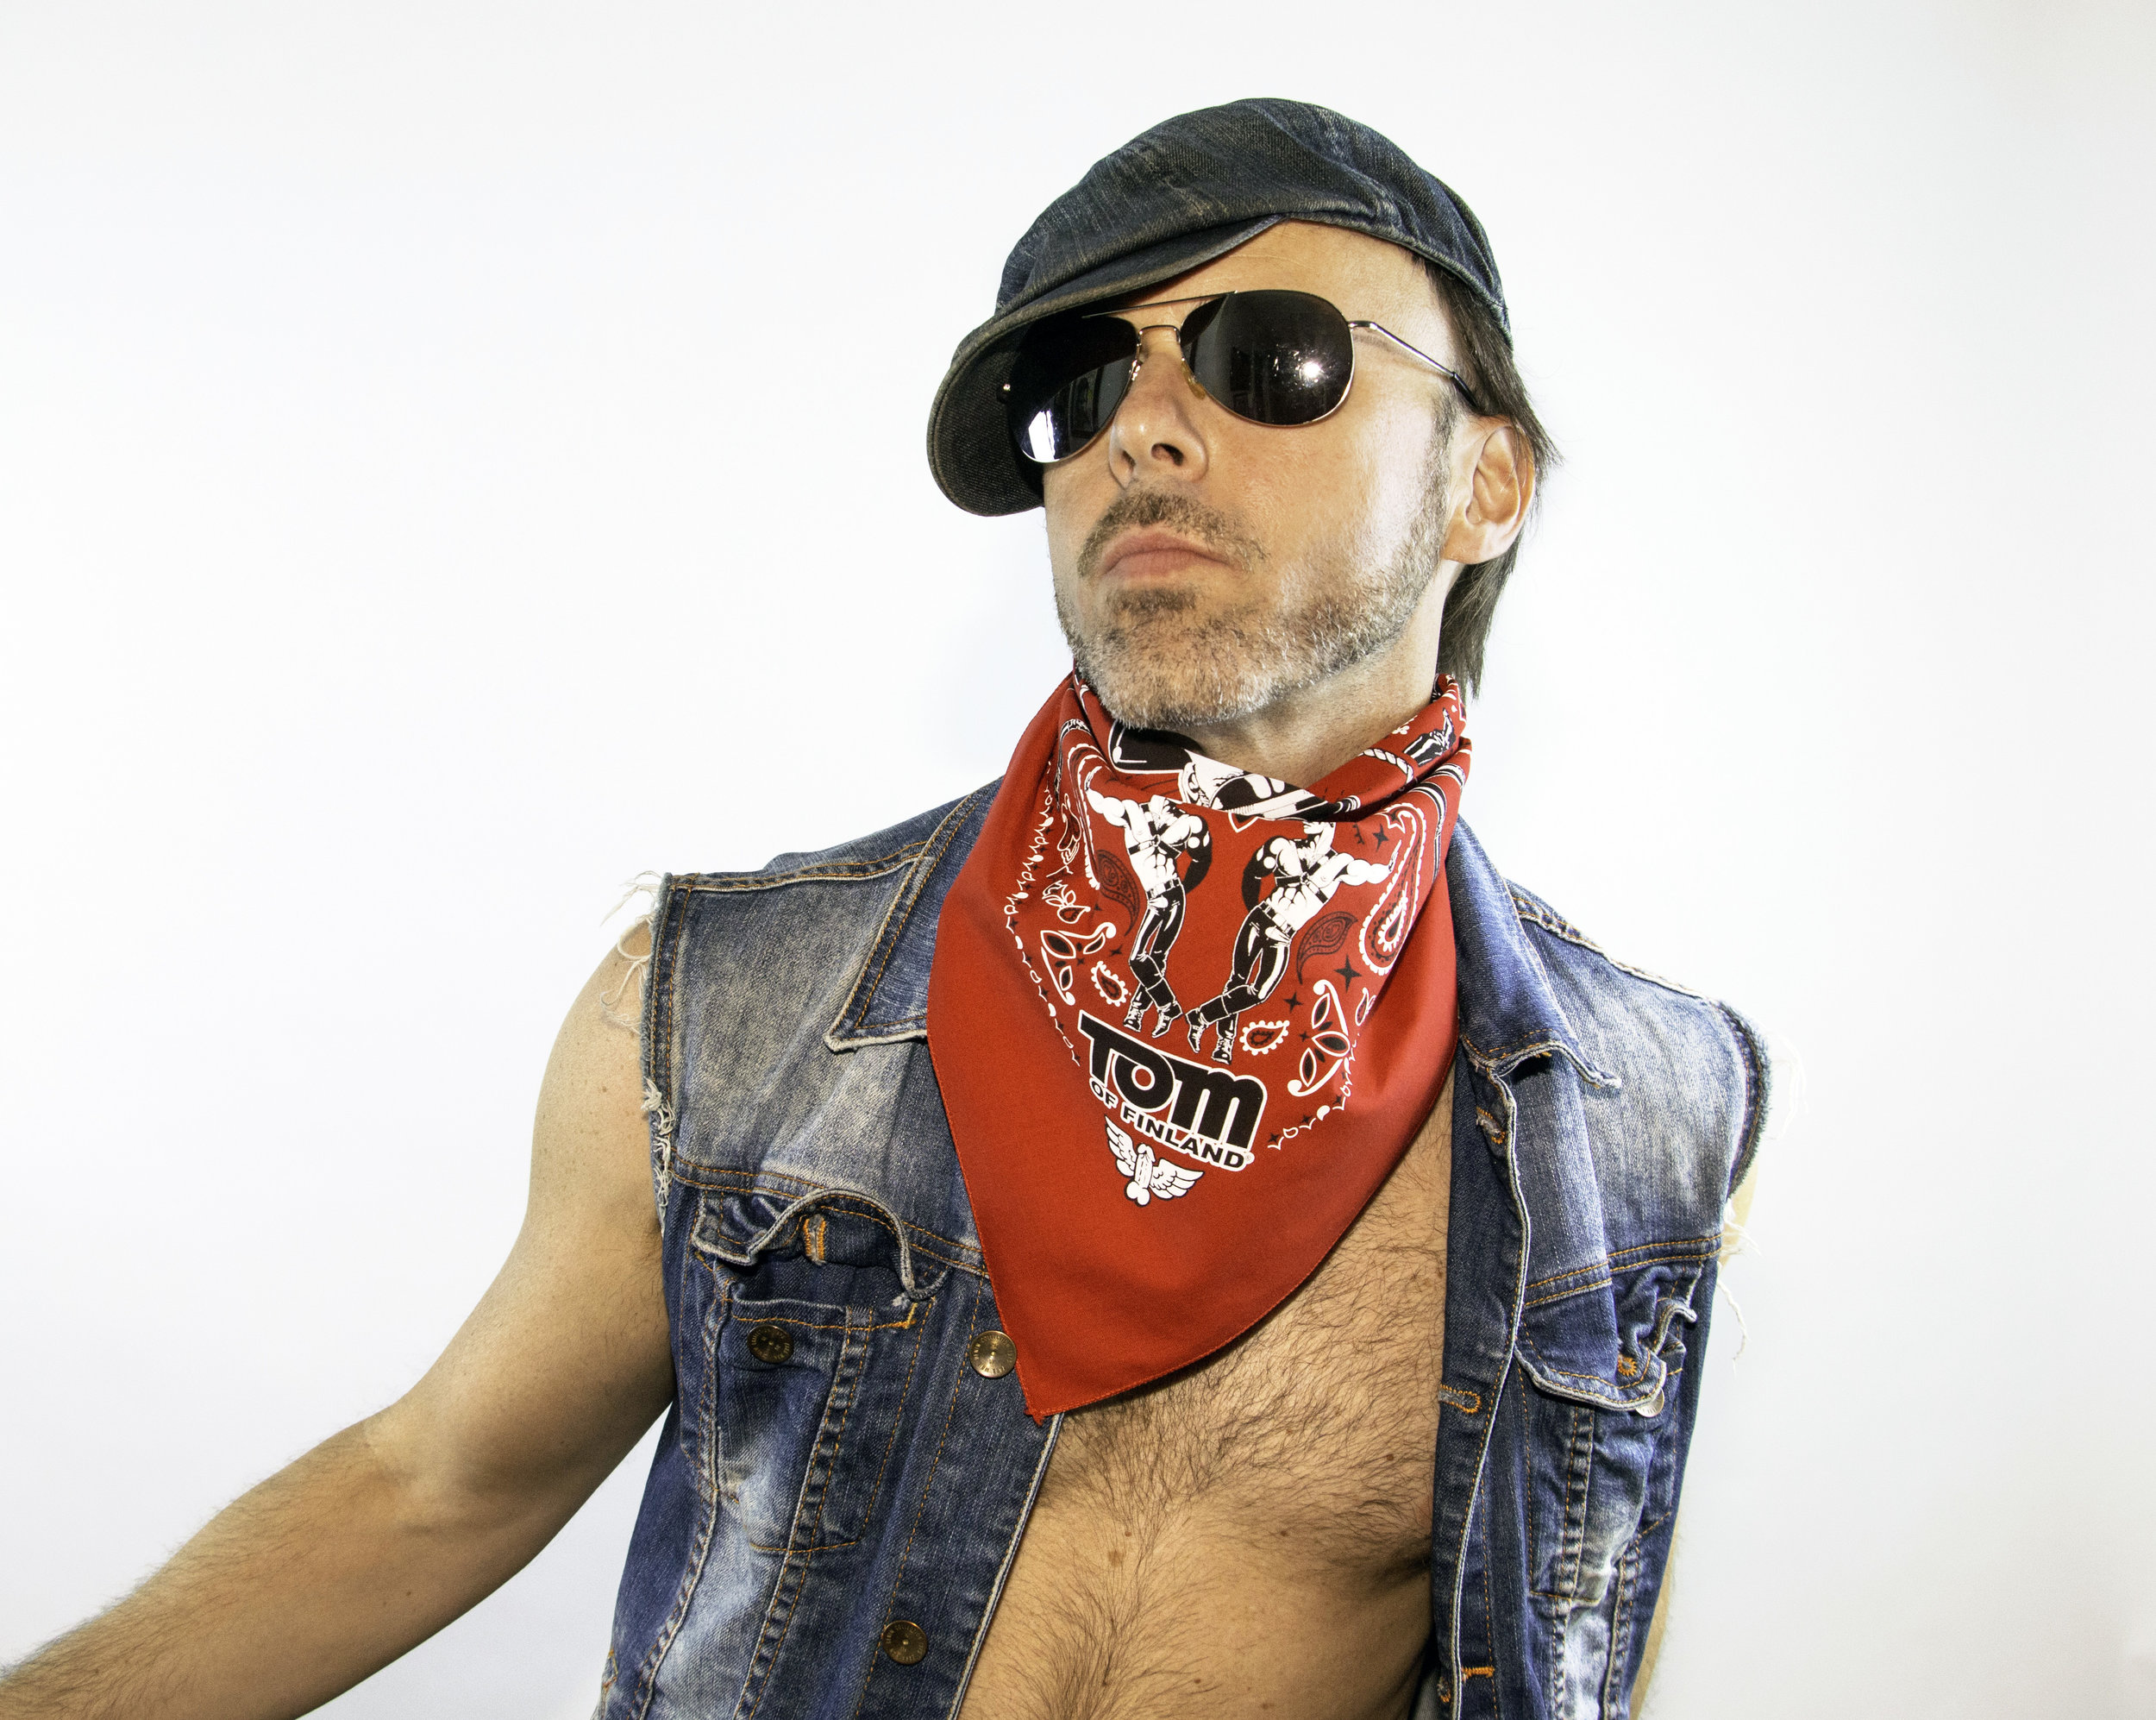 TOM OF FINLAND BANDANA.jpg